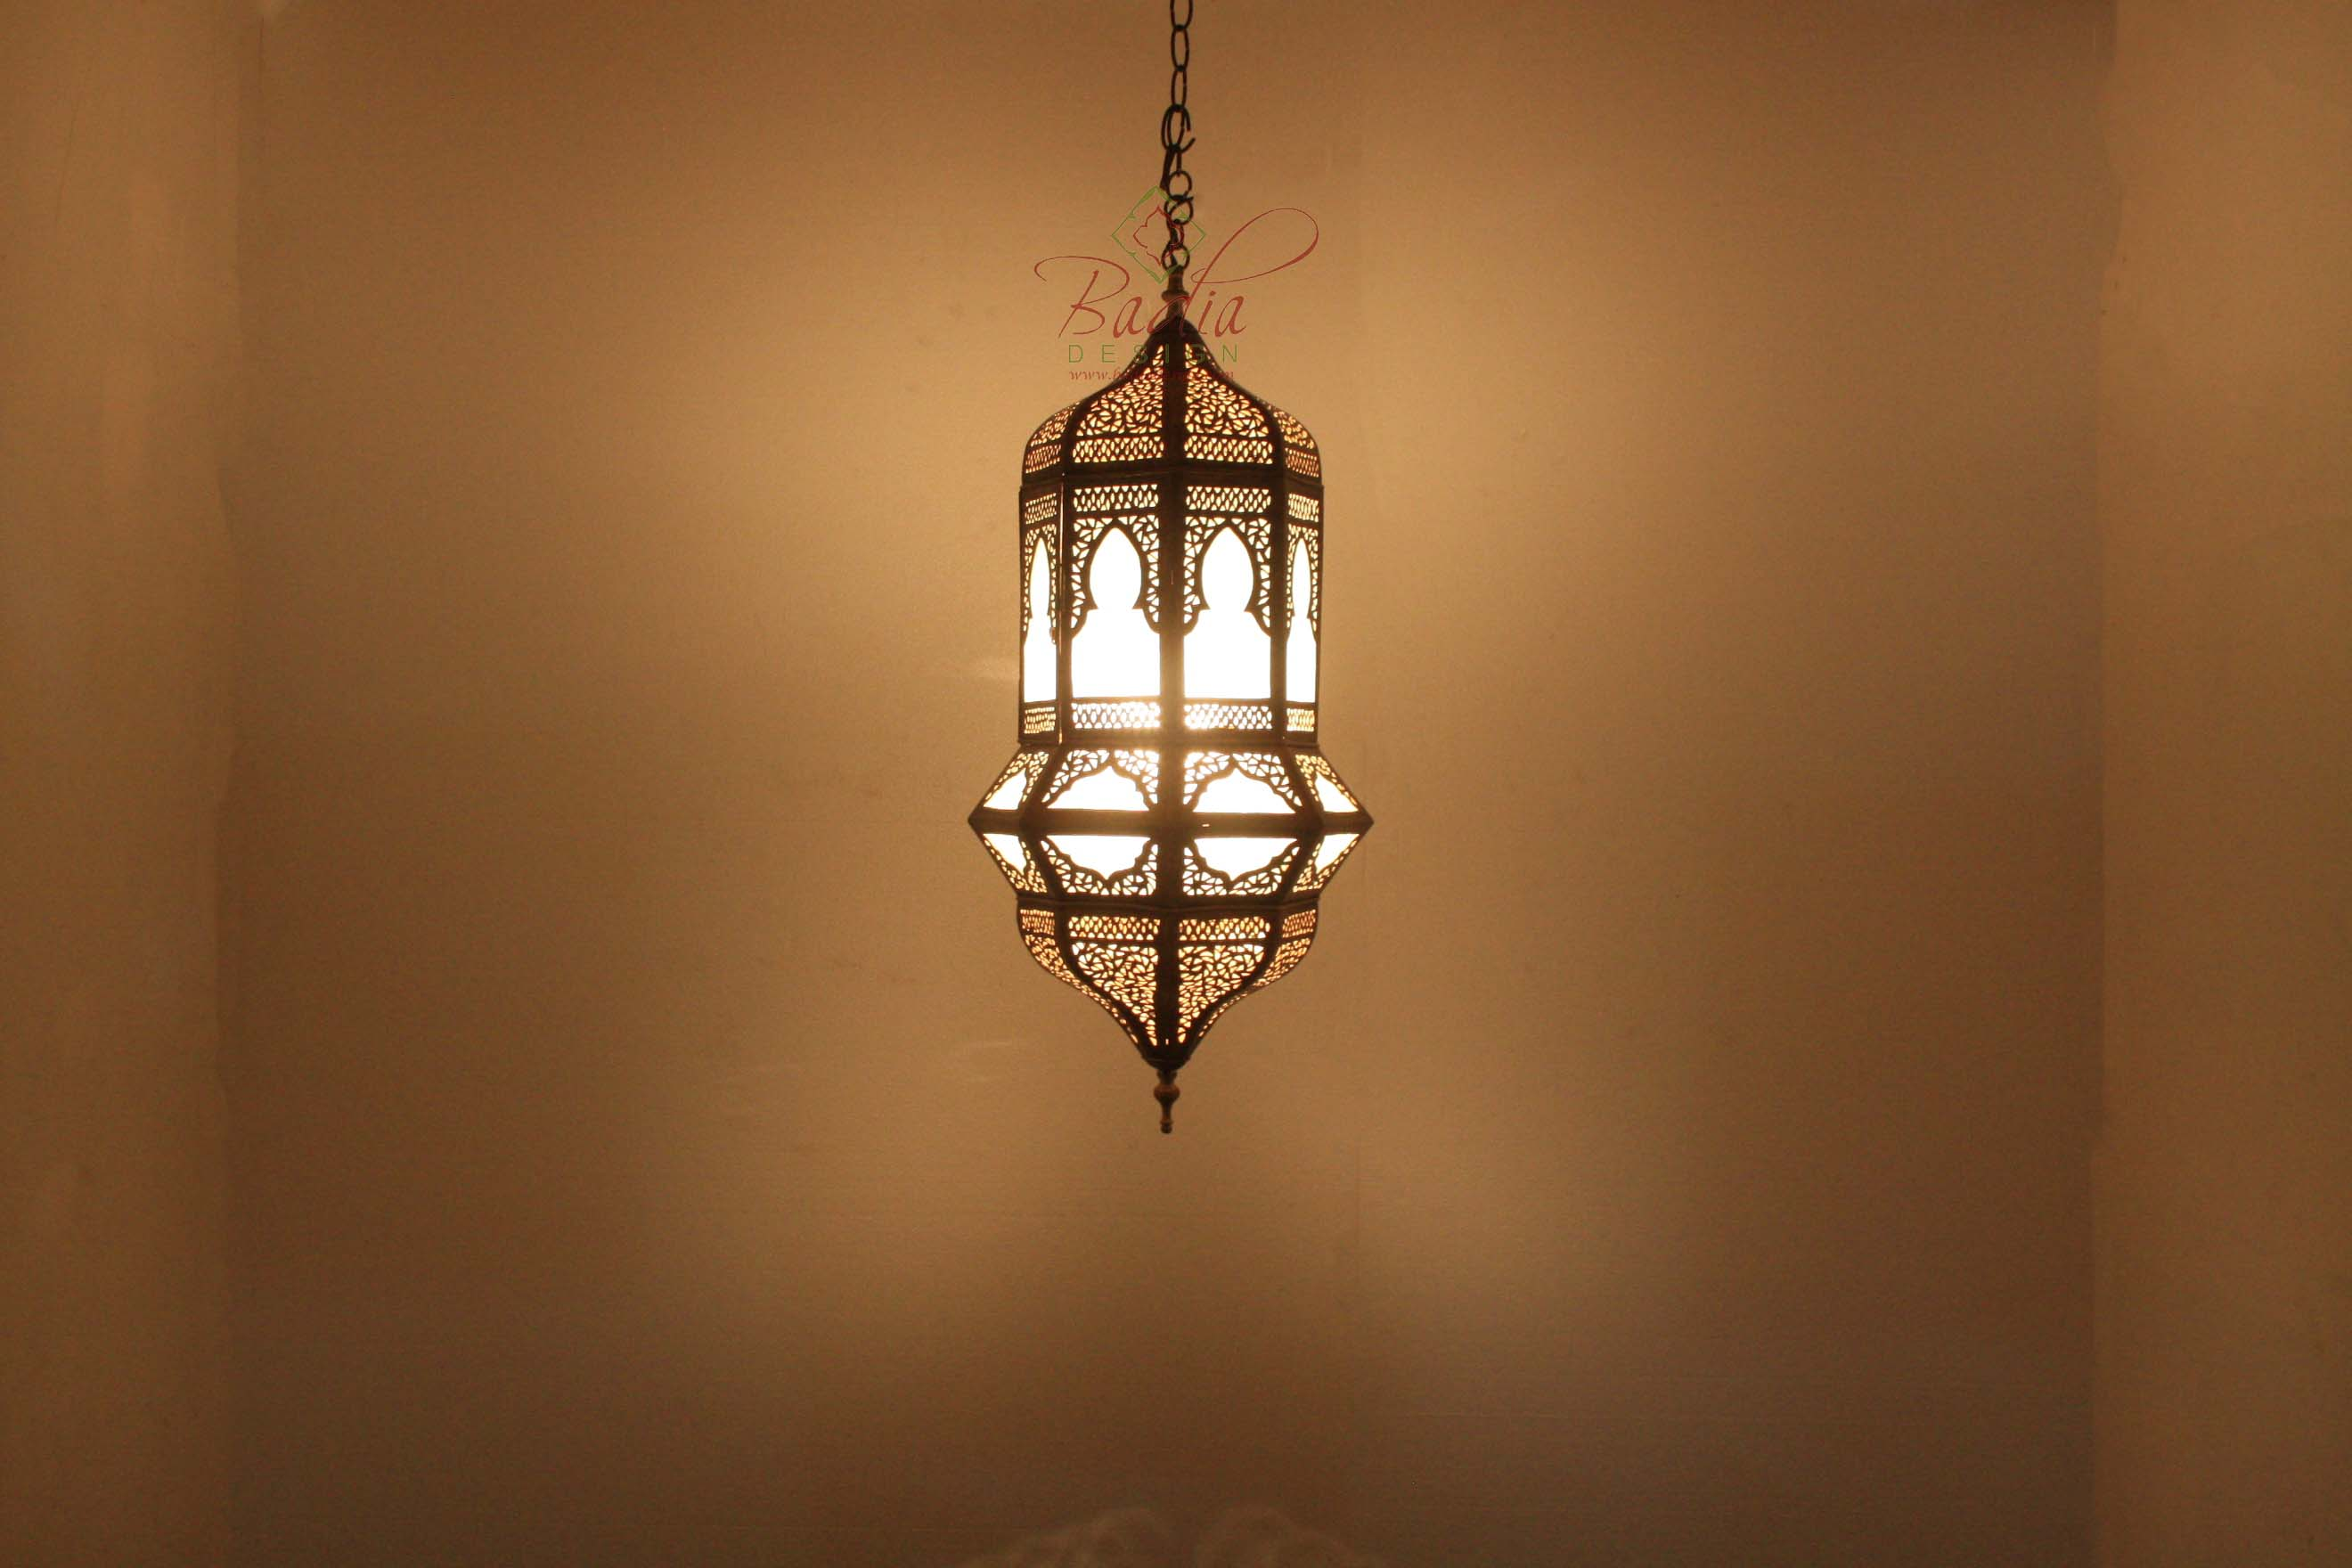 hanging-brass-lantern-with-hite-glass-lig347-2.jpg